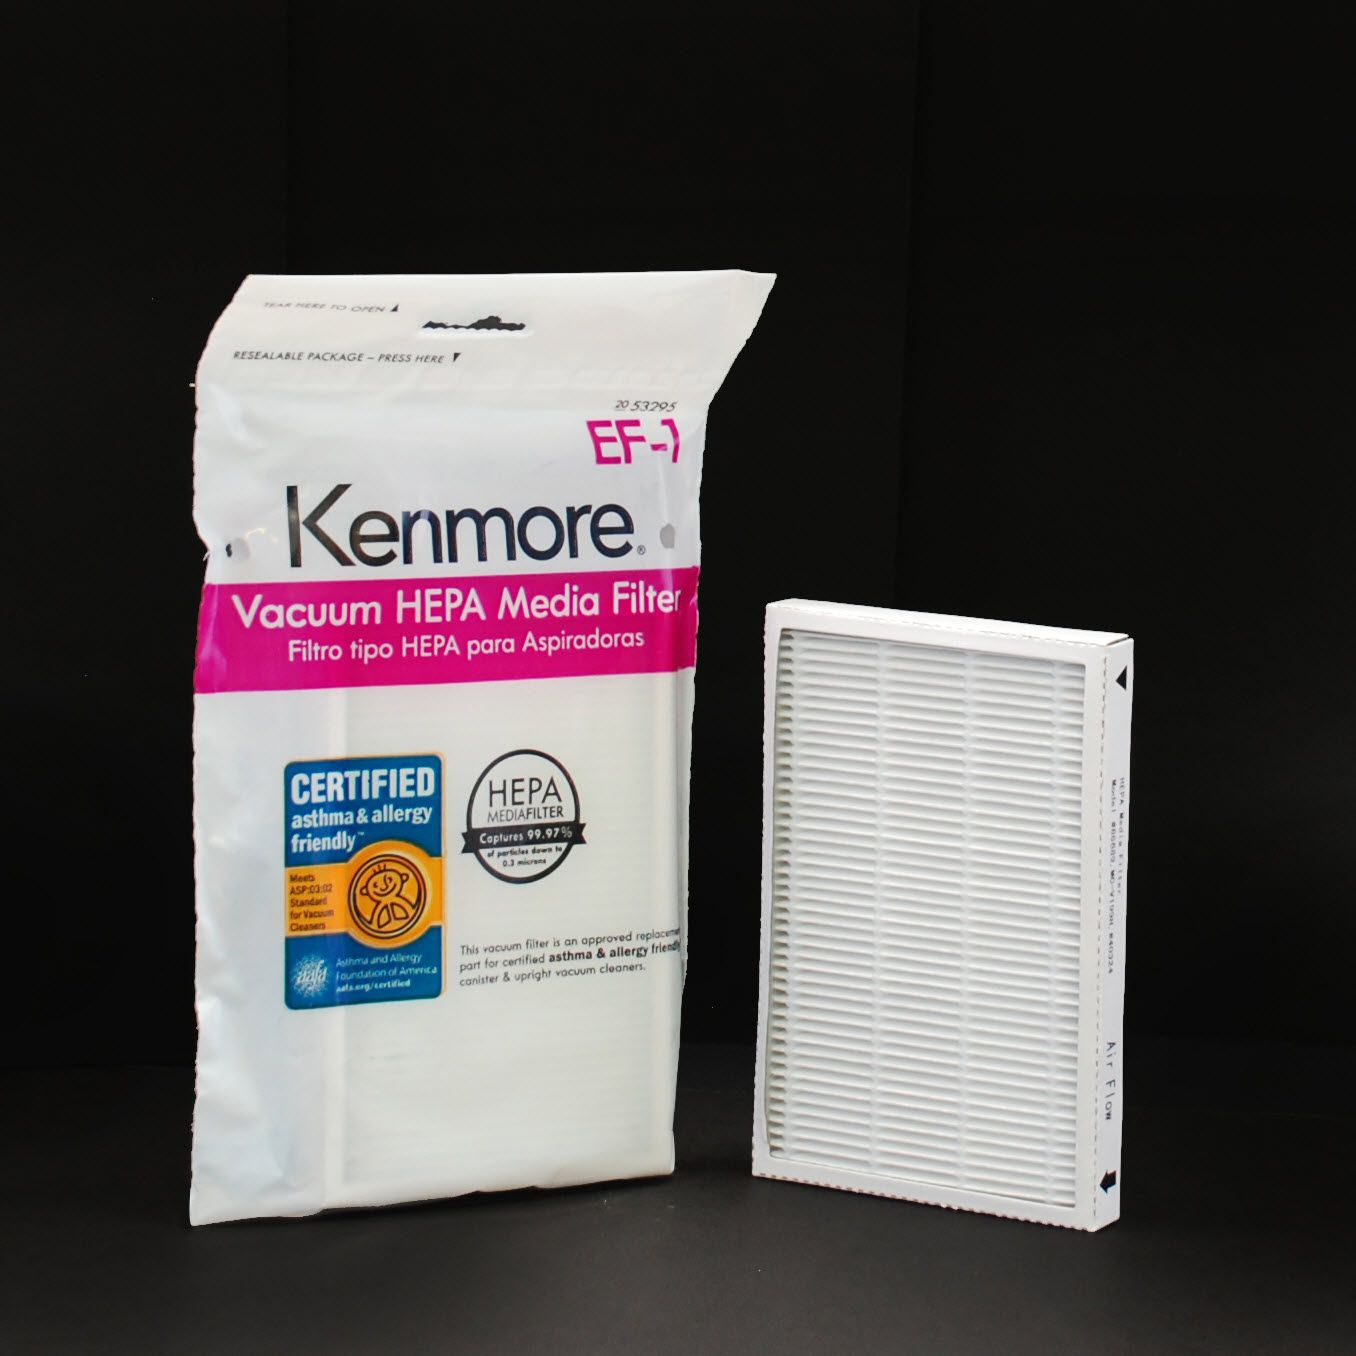 Kenmore 53295 HEPA Vacuum Media Filter, EF-1